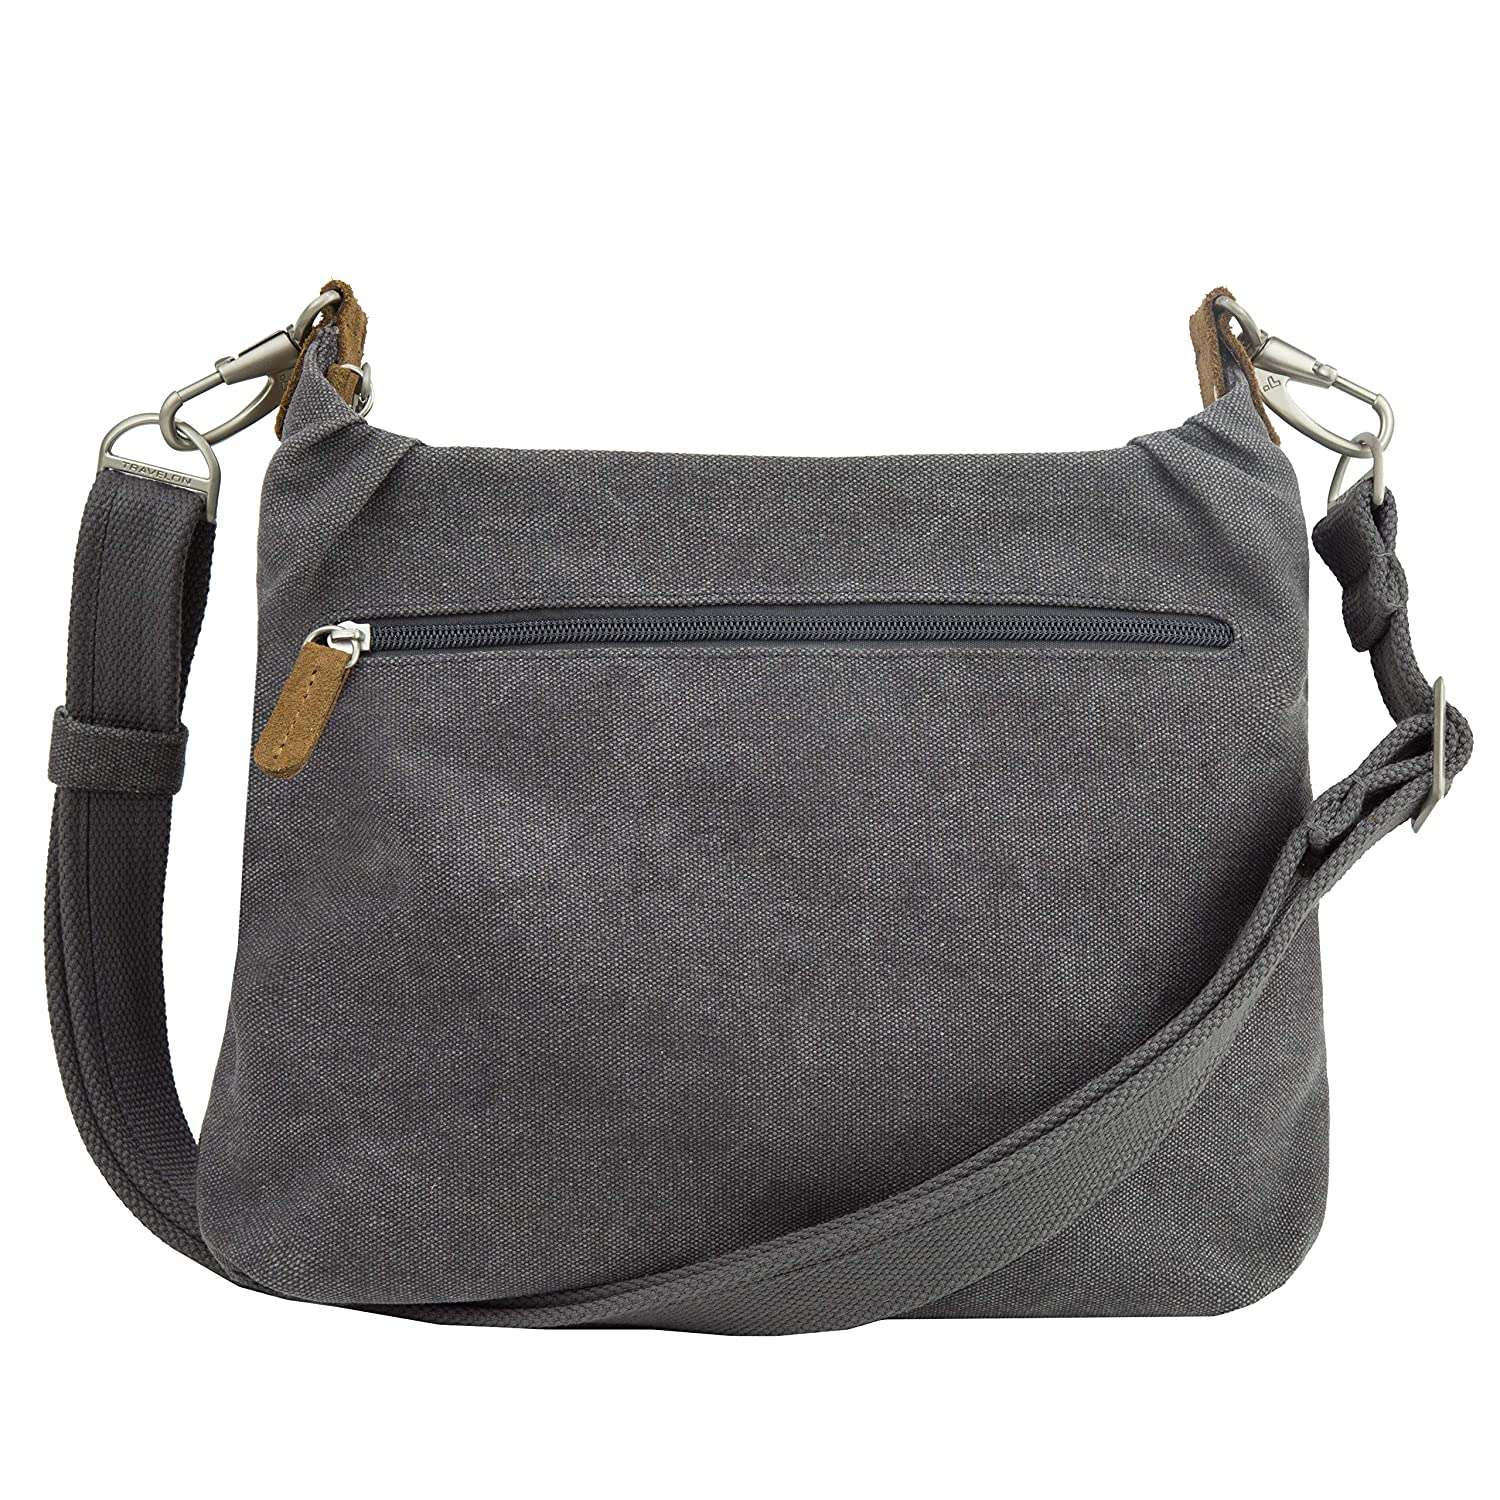 Bridal & Wedding Party Jewelry Sporting Bags For Women 2018 Unisex Outdoor Students Sport Canvas Chest Bag Phone Bag Crossbody Bags For Women сумка женская